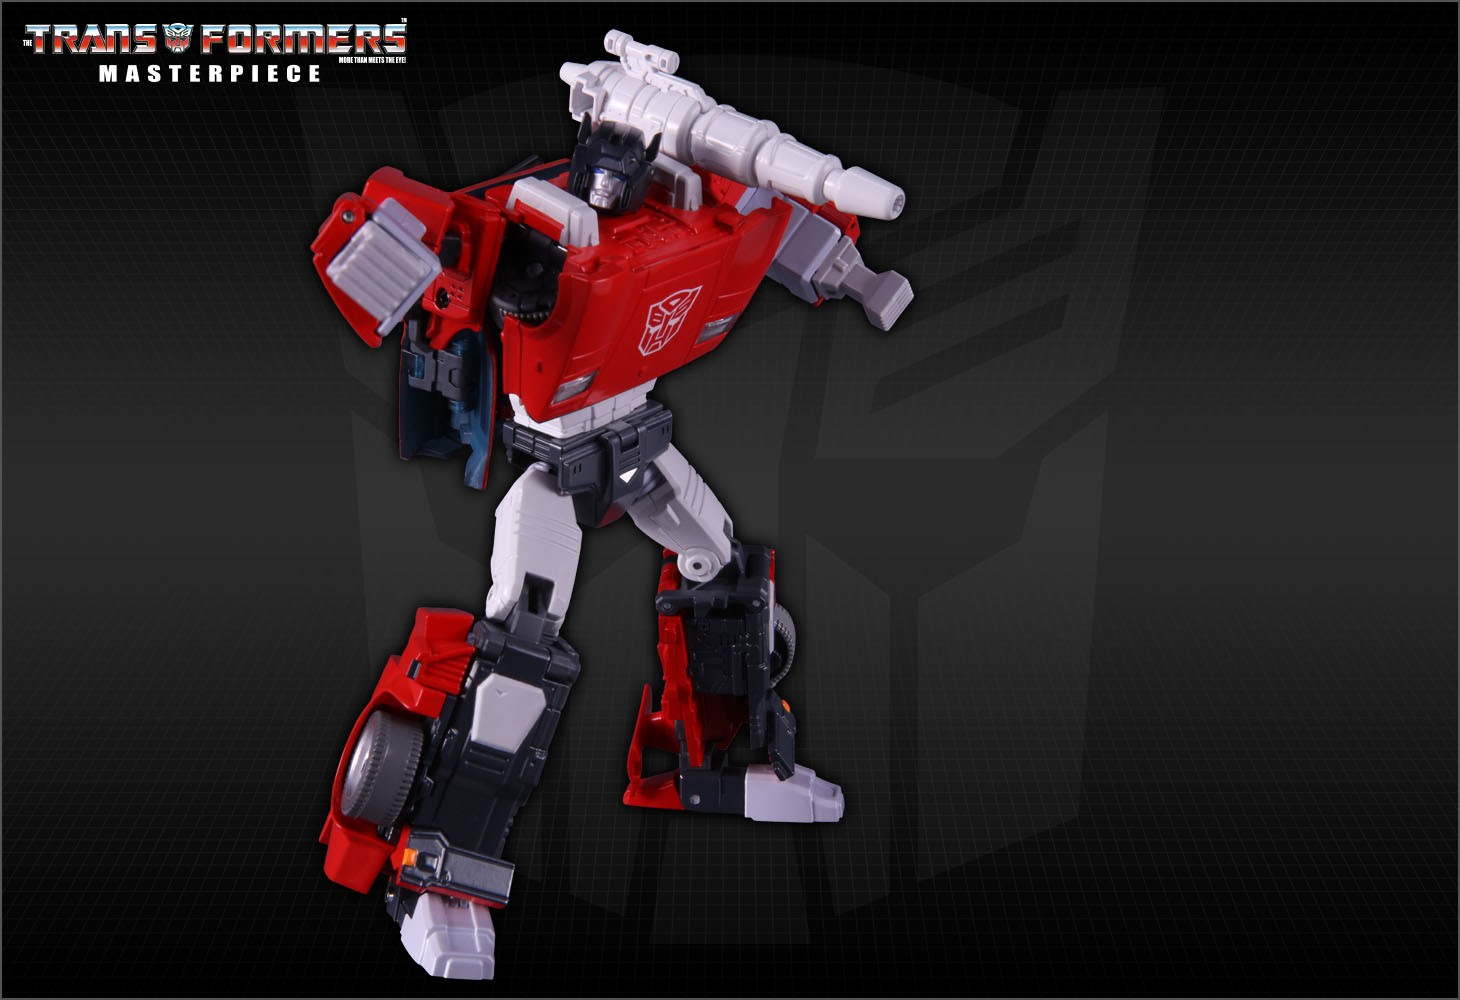 Transformers News: New Images of Masterpiece MP-12+ Anime Sideswipe